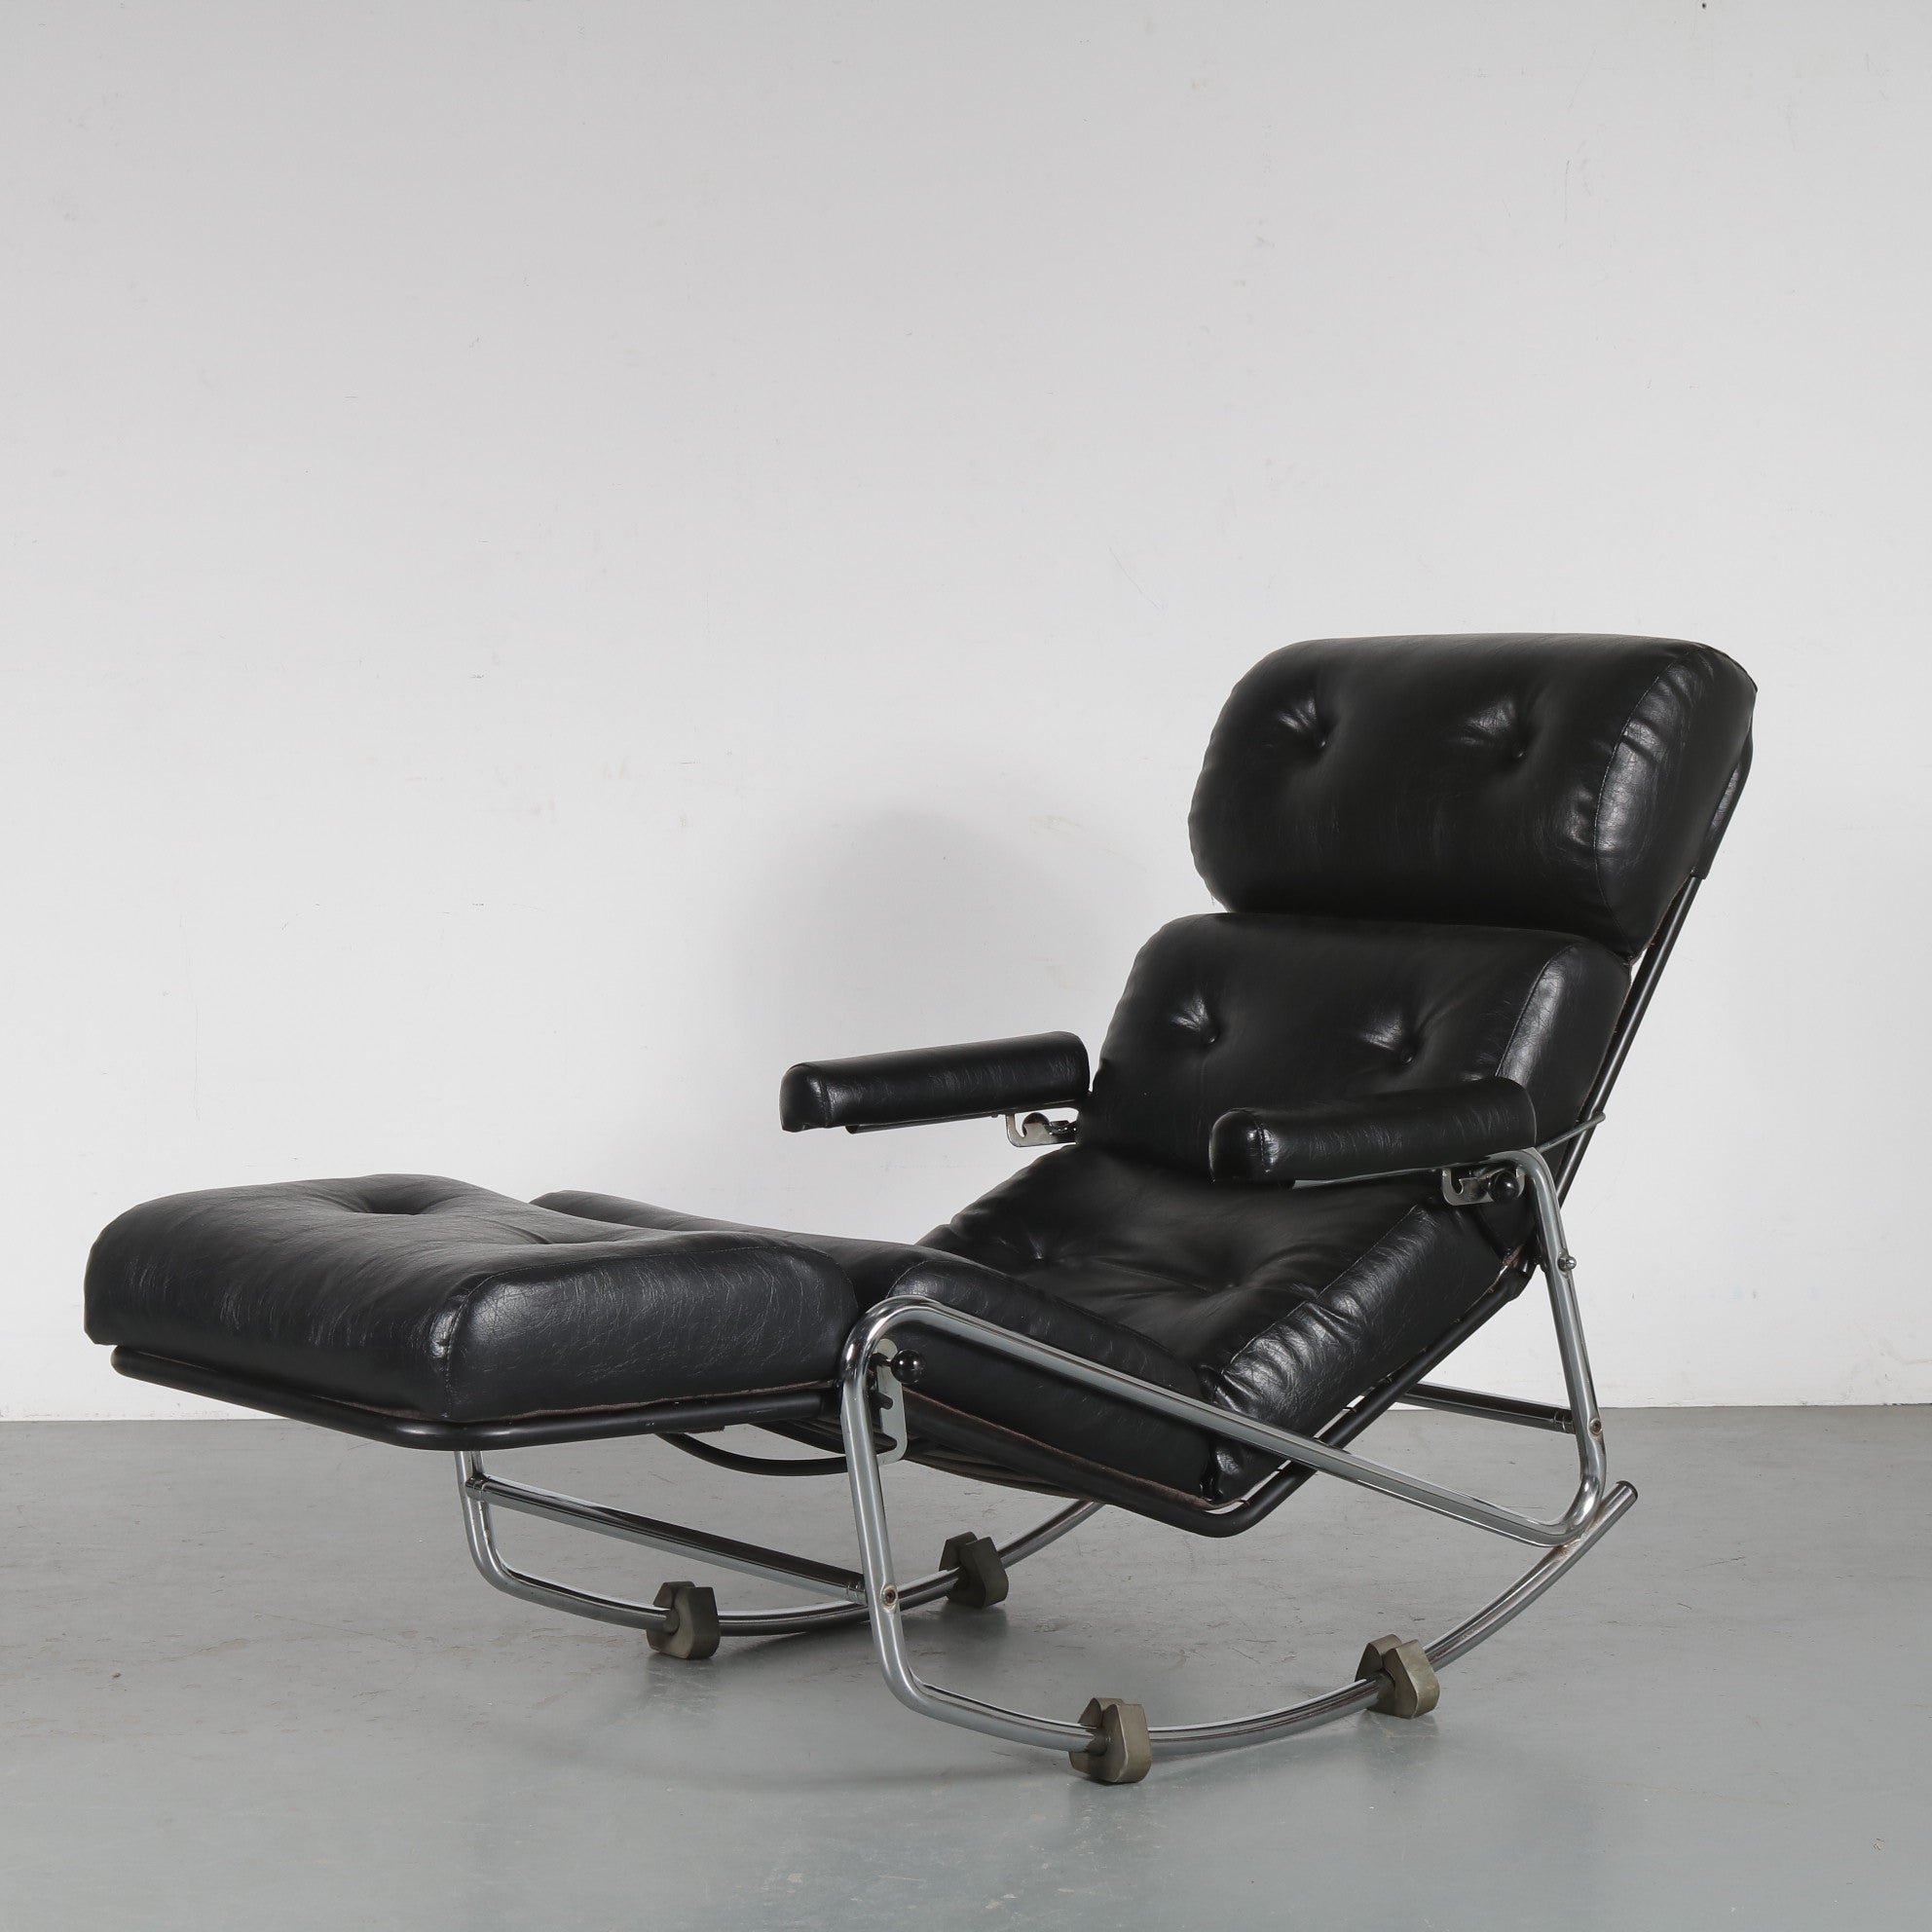 Tweedehands design Rocking Lounge Chair, attributed to Jacques Adnet from France 1970